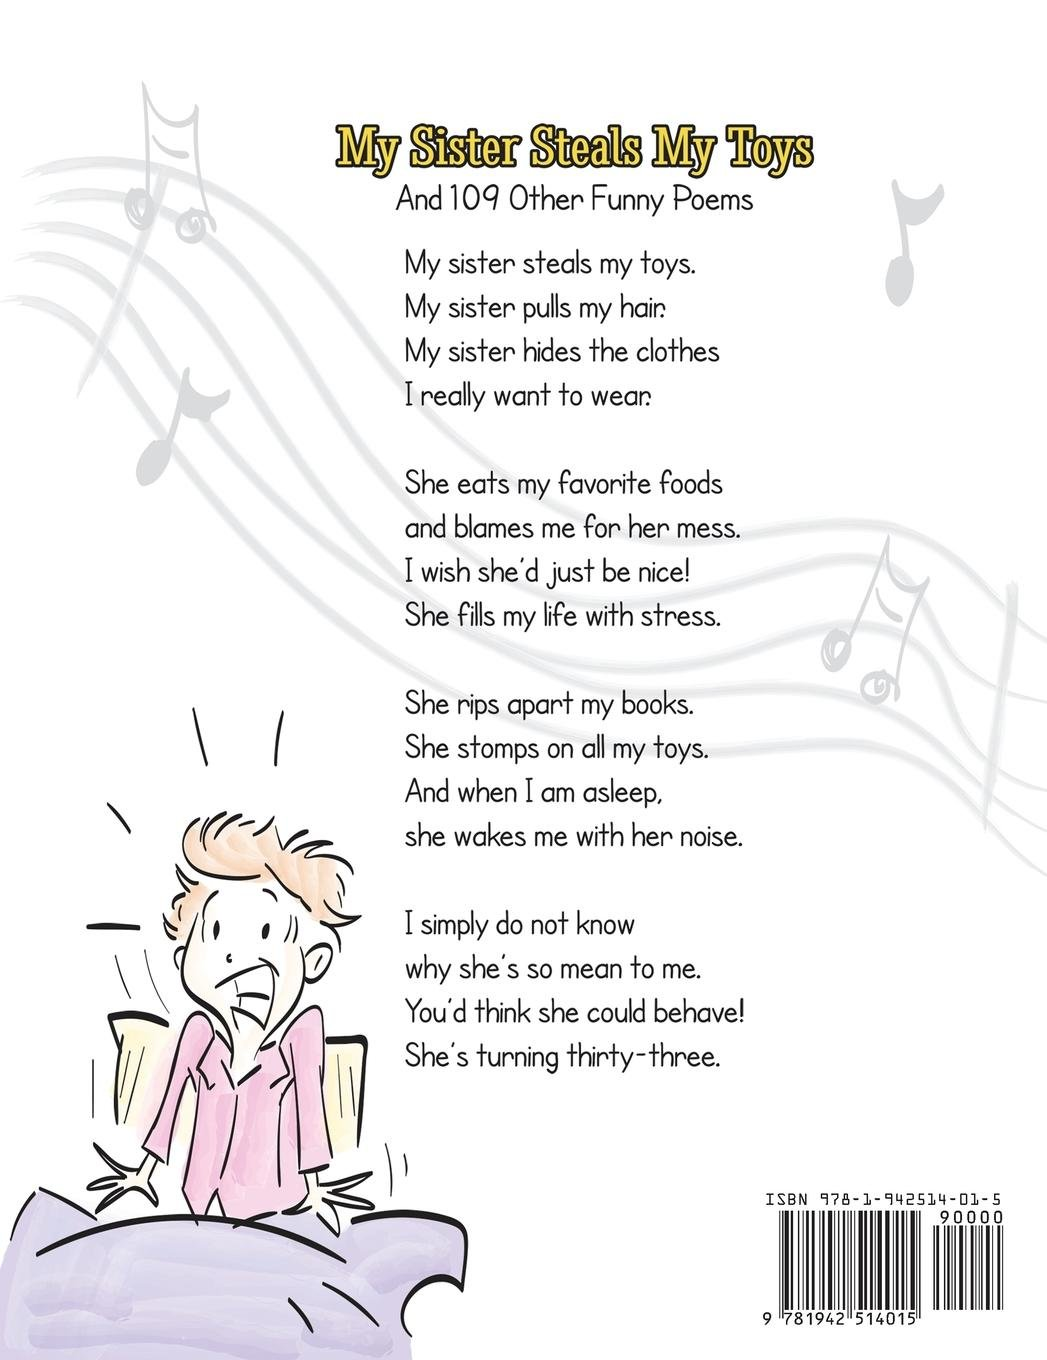 my sister steals my toys and 109 other funny poems steve hanson